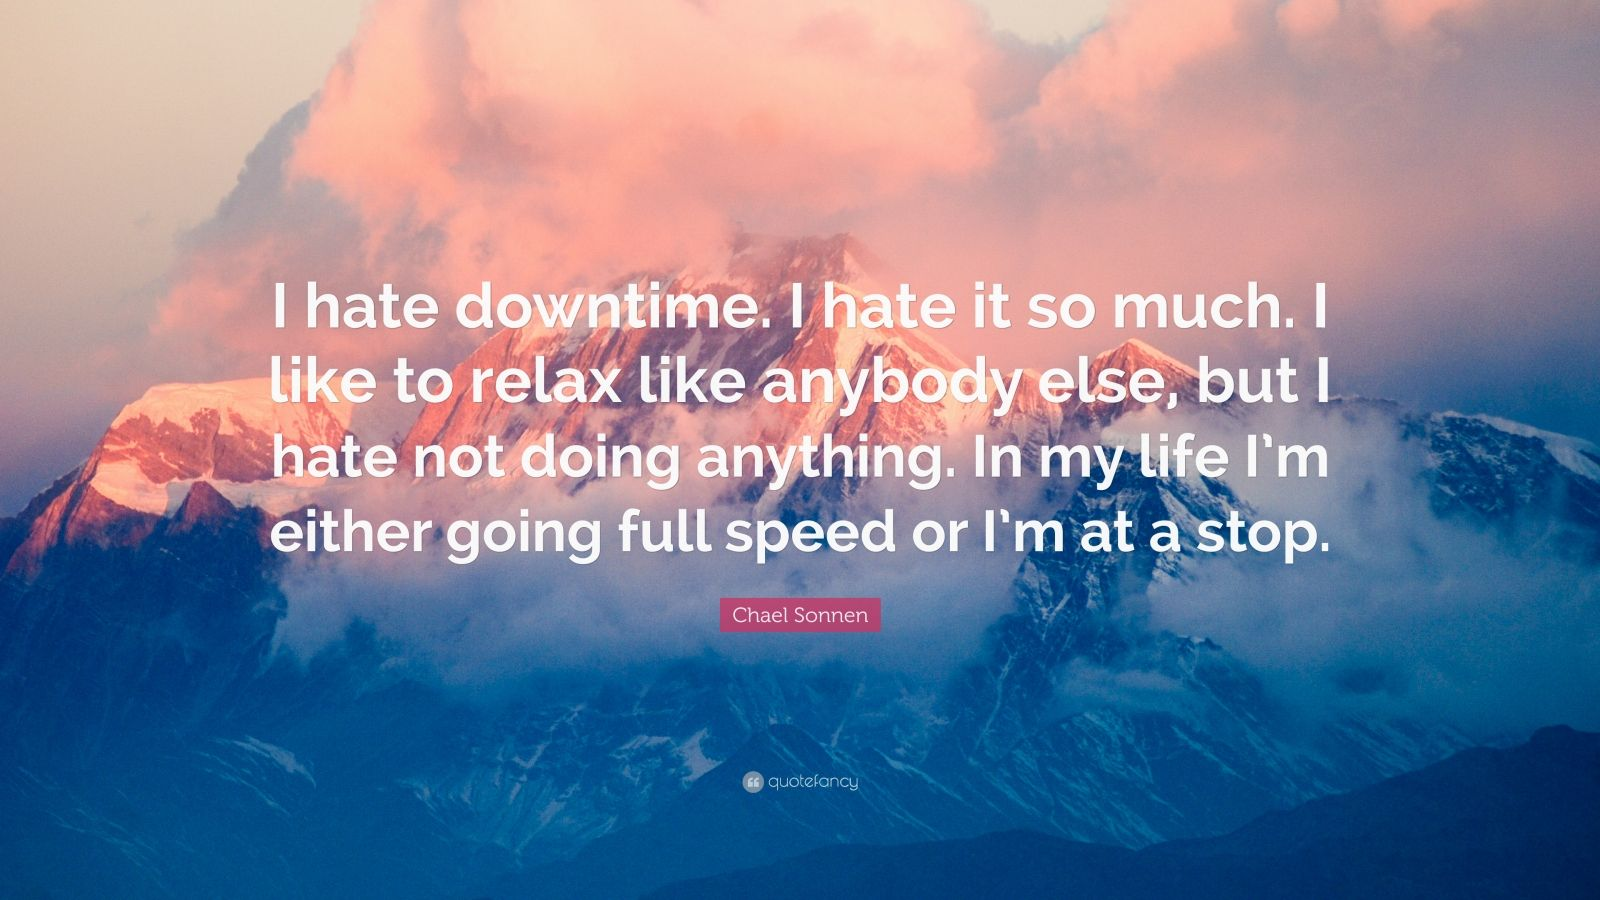 "Chael Sonnen Quote: ""I hate downtime. I hate it so much. I like to relax like anybody else, but I hate not doing anything. In my life I'm either going full speed or I'm at a stop."""